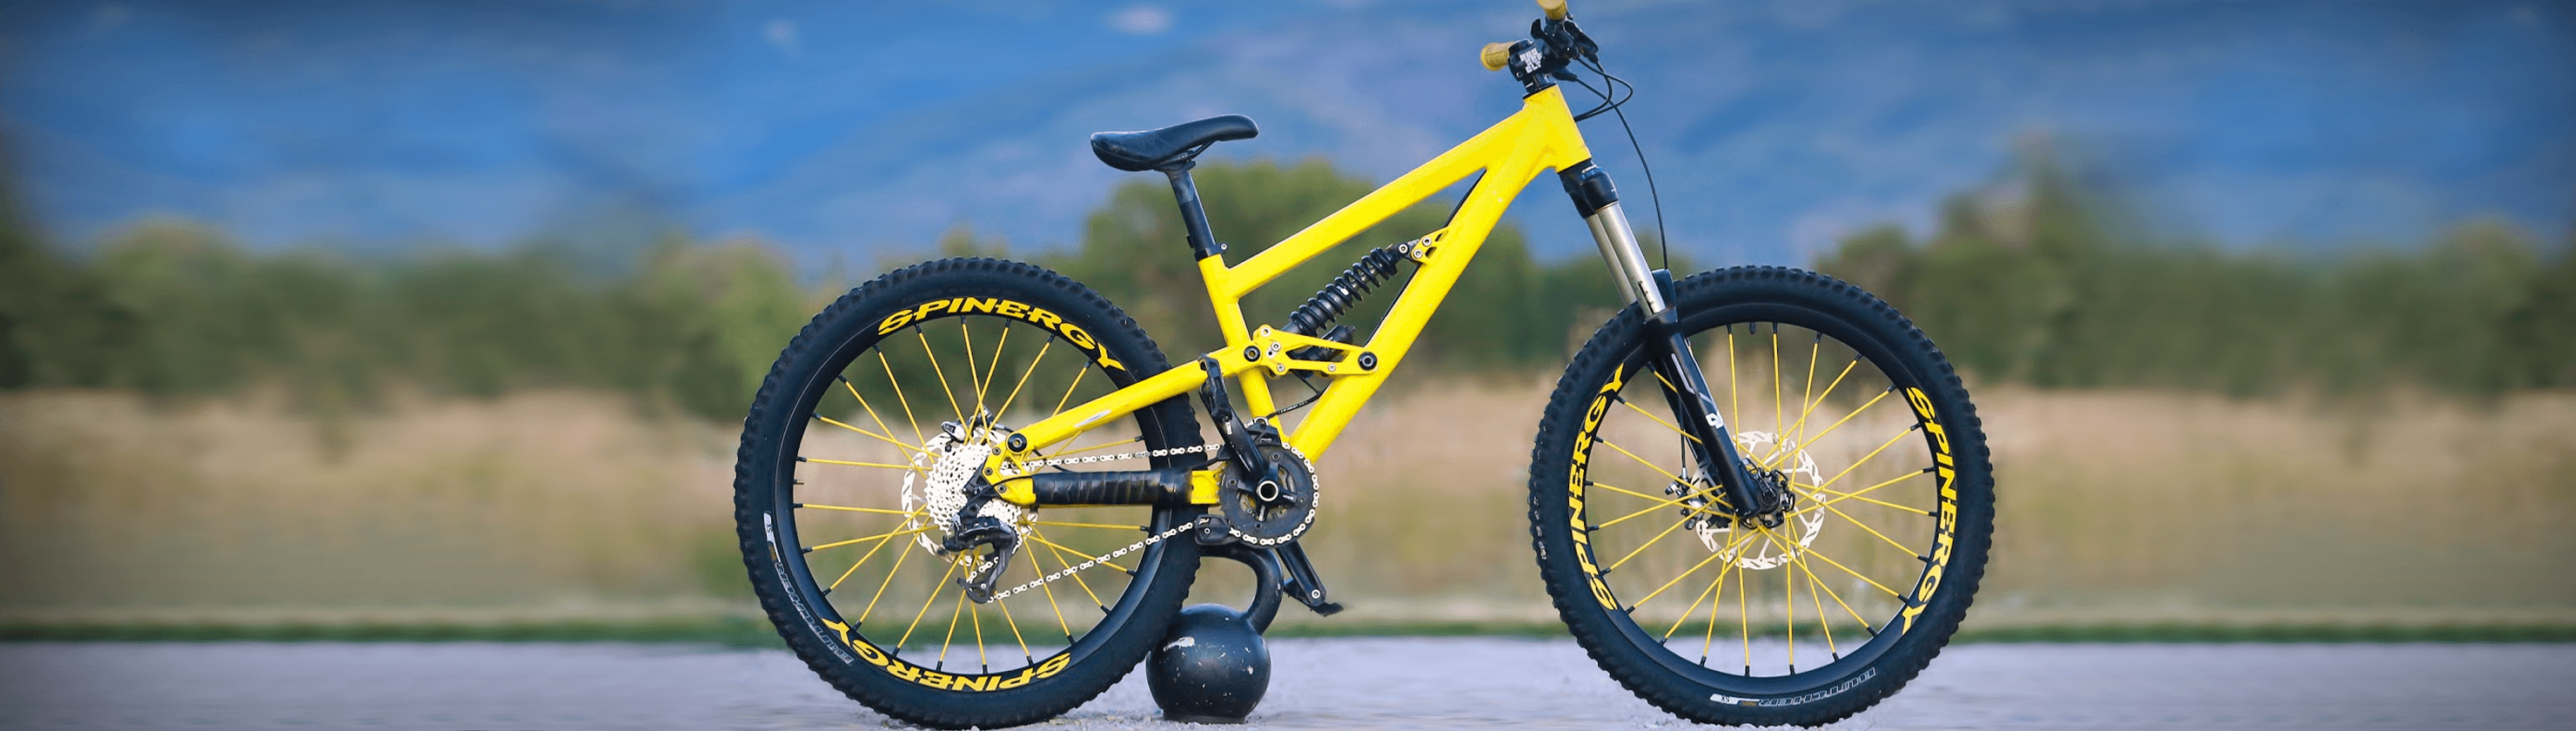 yellow_bicycle_slider.png